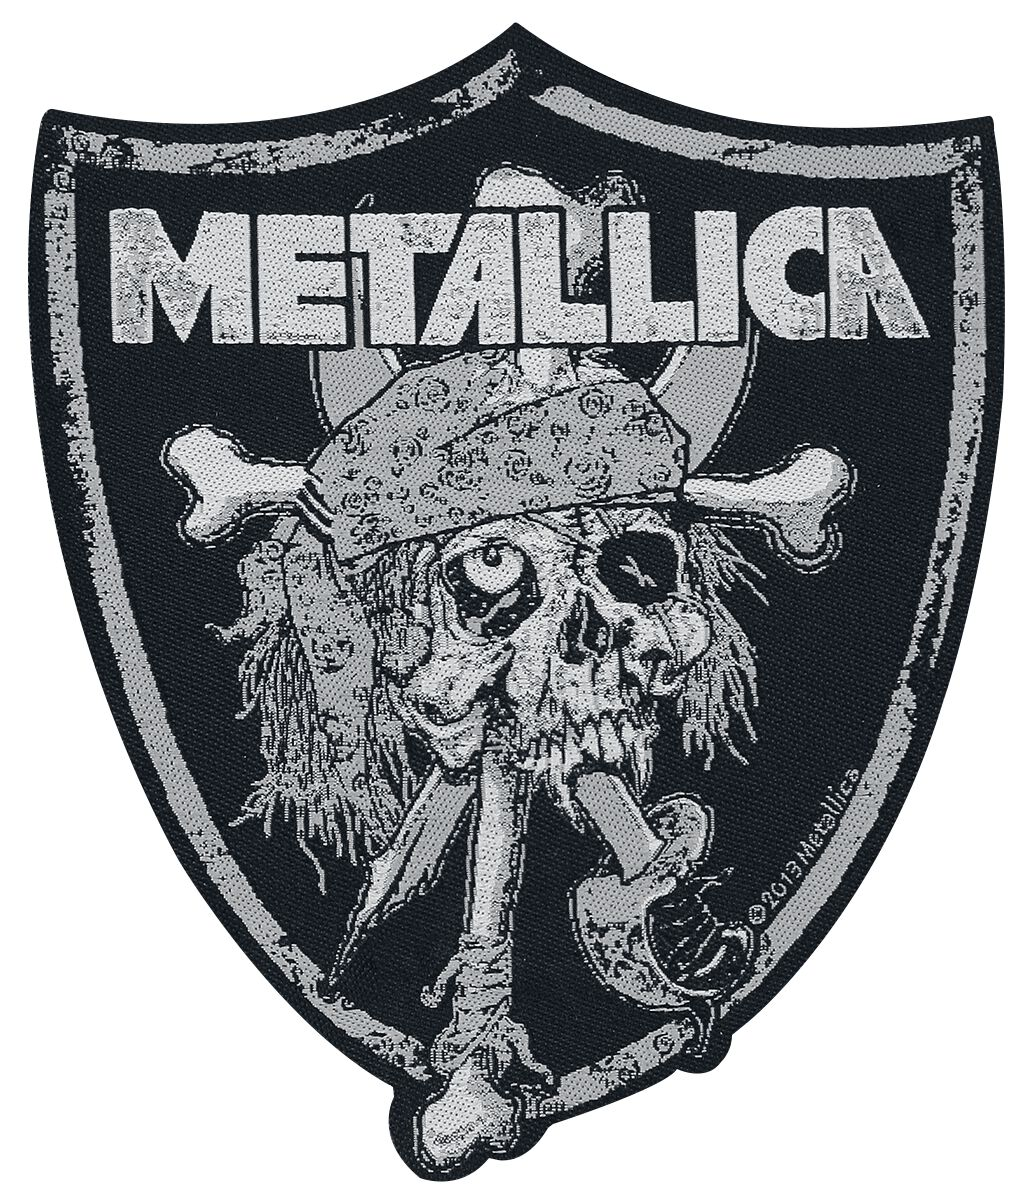 Metallica  Raiders Skull  Patch  schwarz/grau